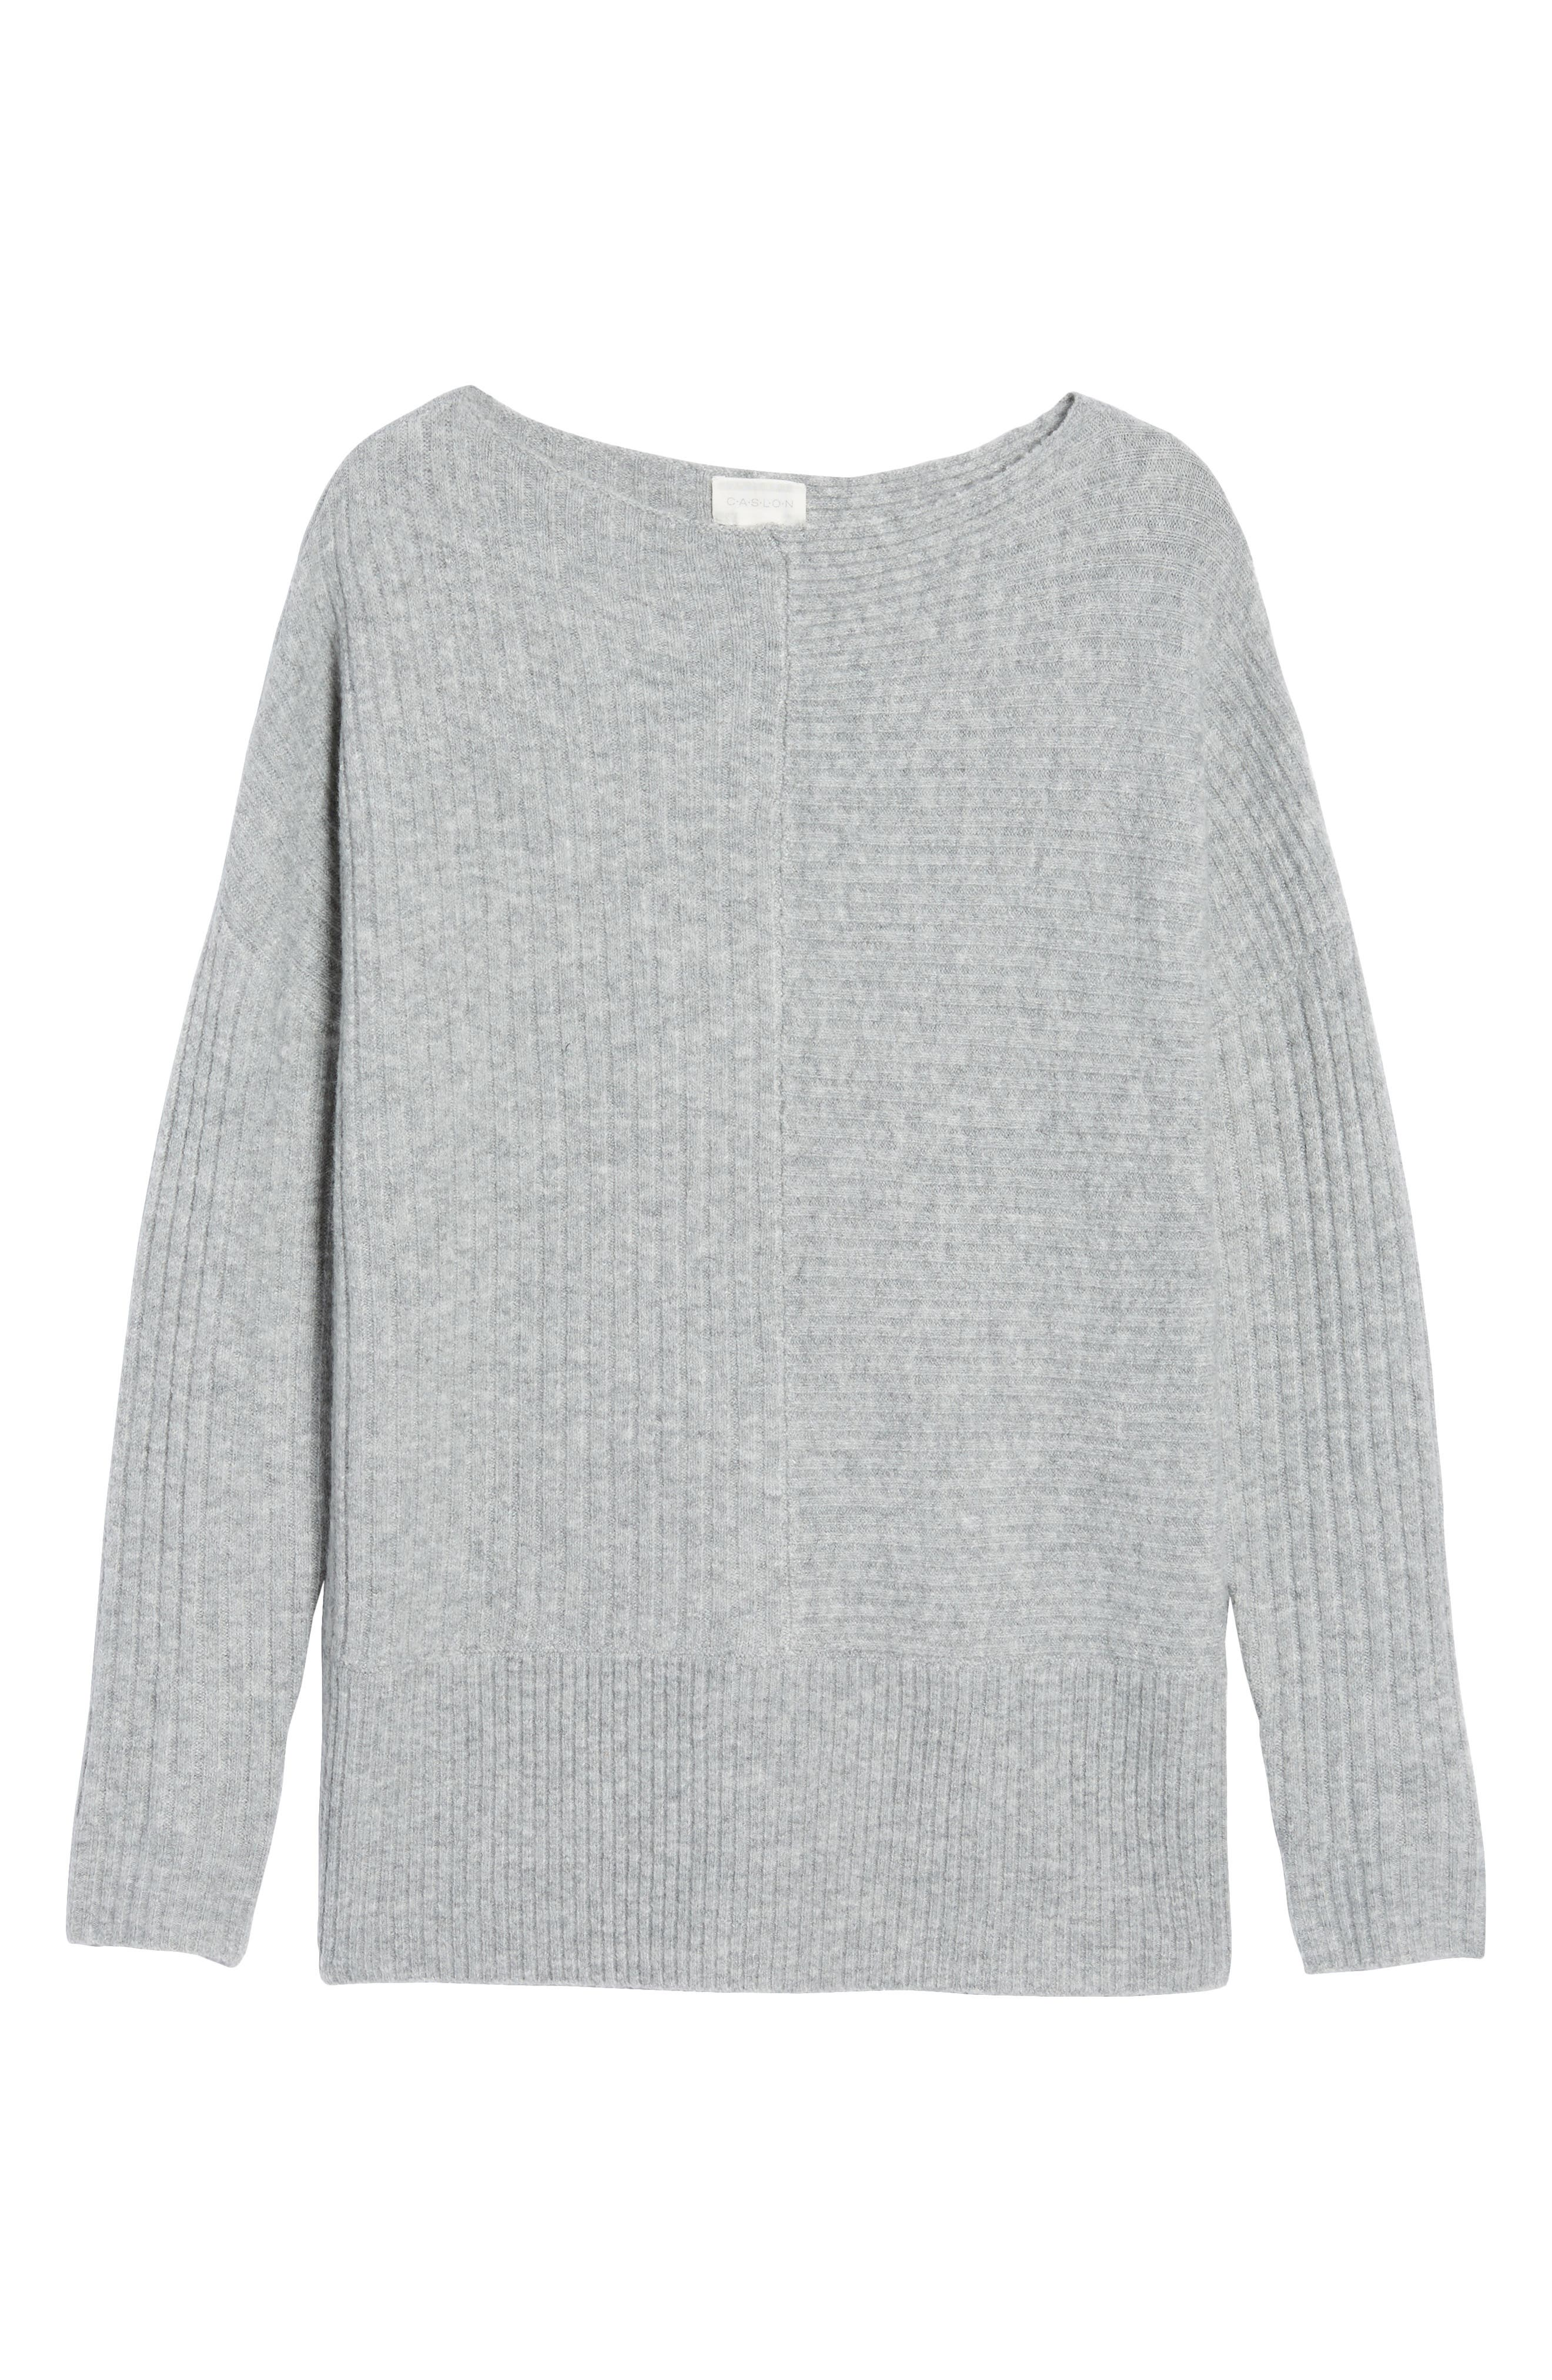 Multi Ribbed Fleece Knit Sweater,                             Alternate thumbnail 6, color,                             Heather Grey